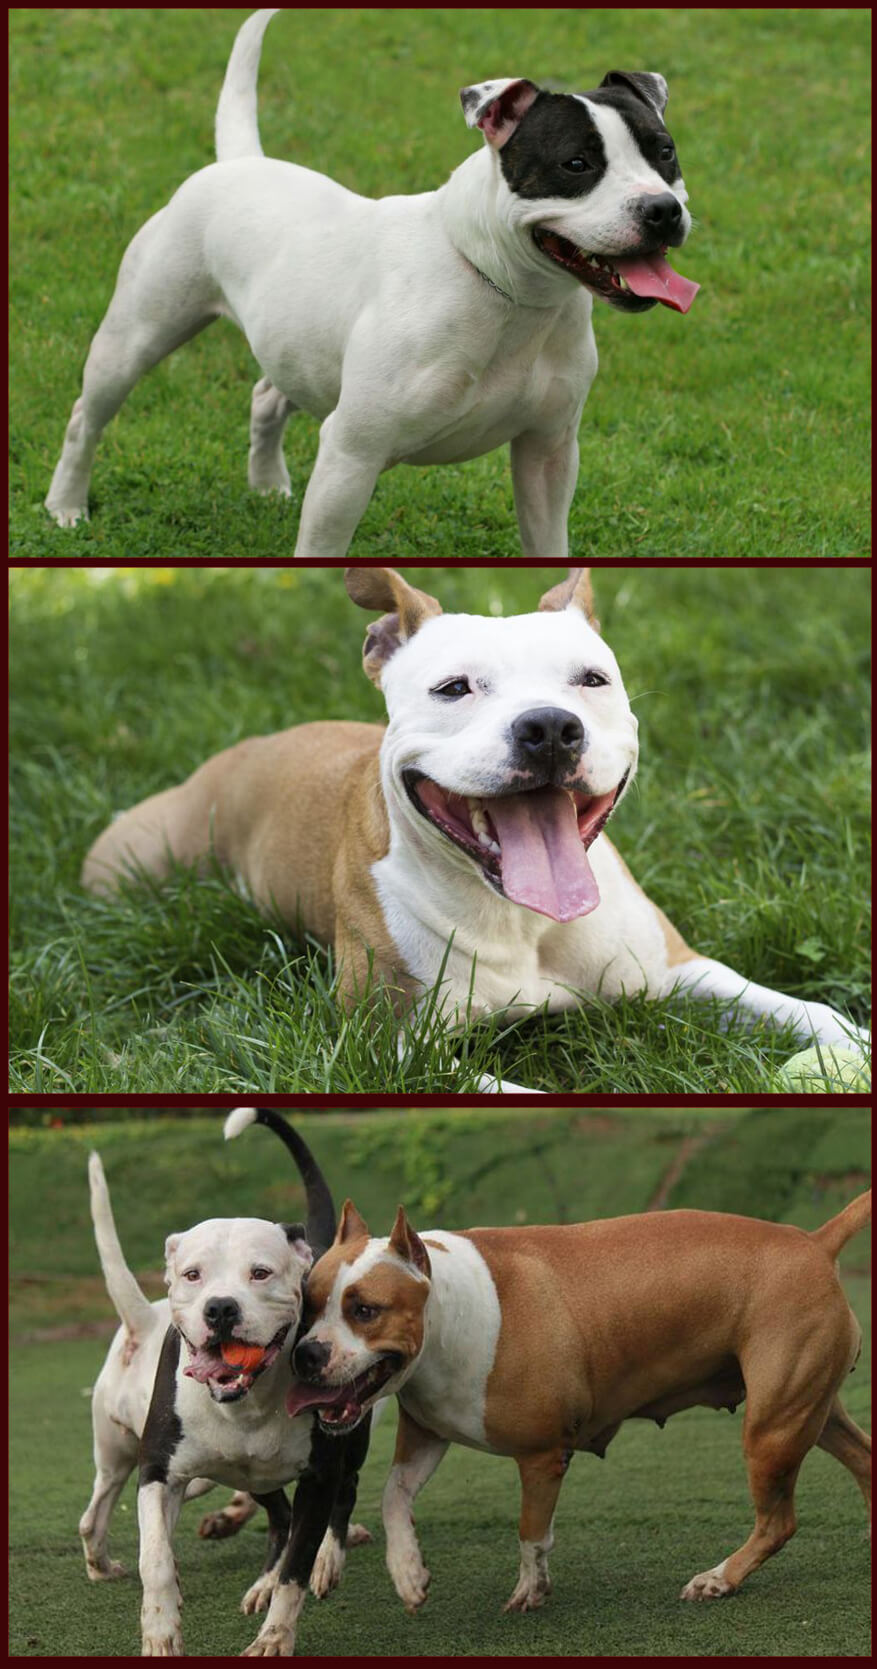 Some important information about the American Pit Bull Terrier